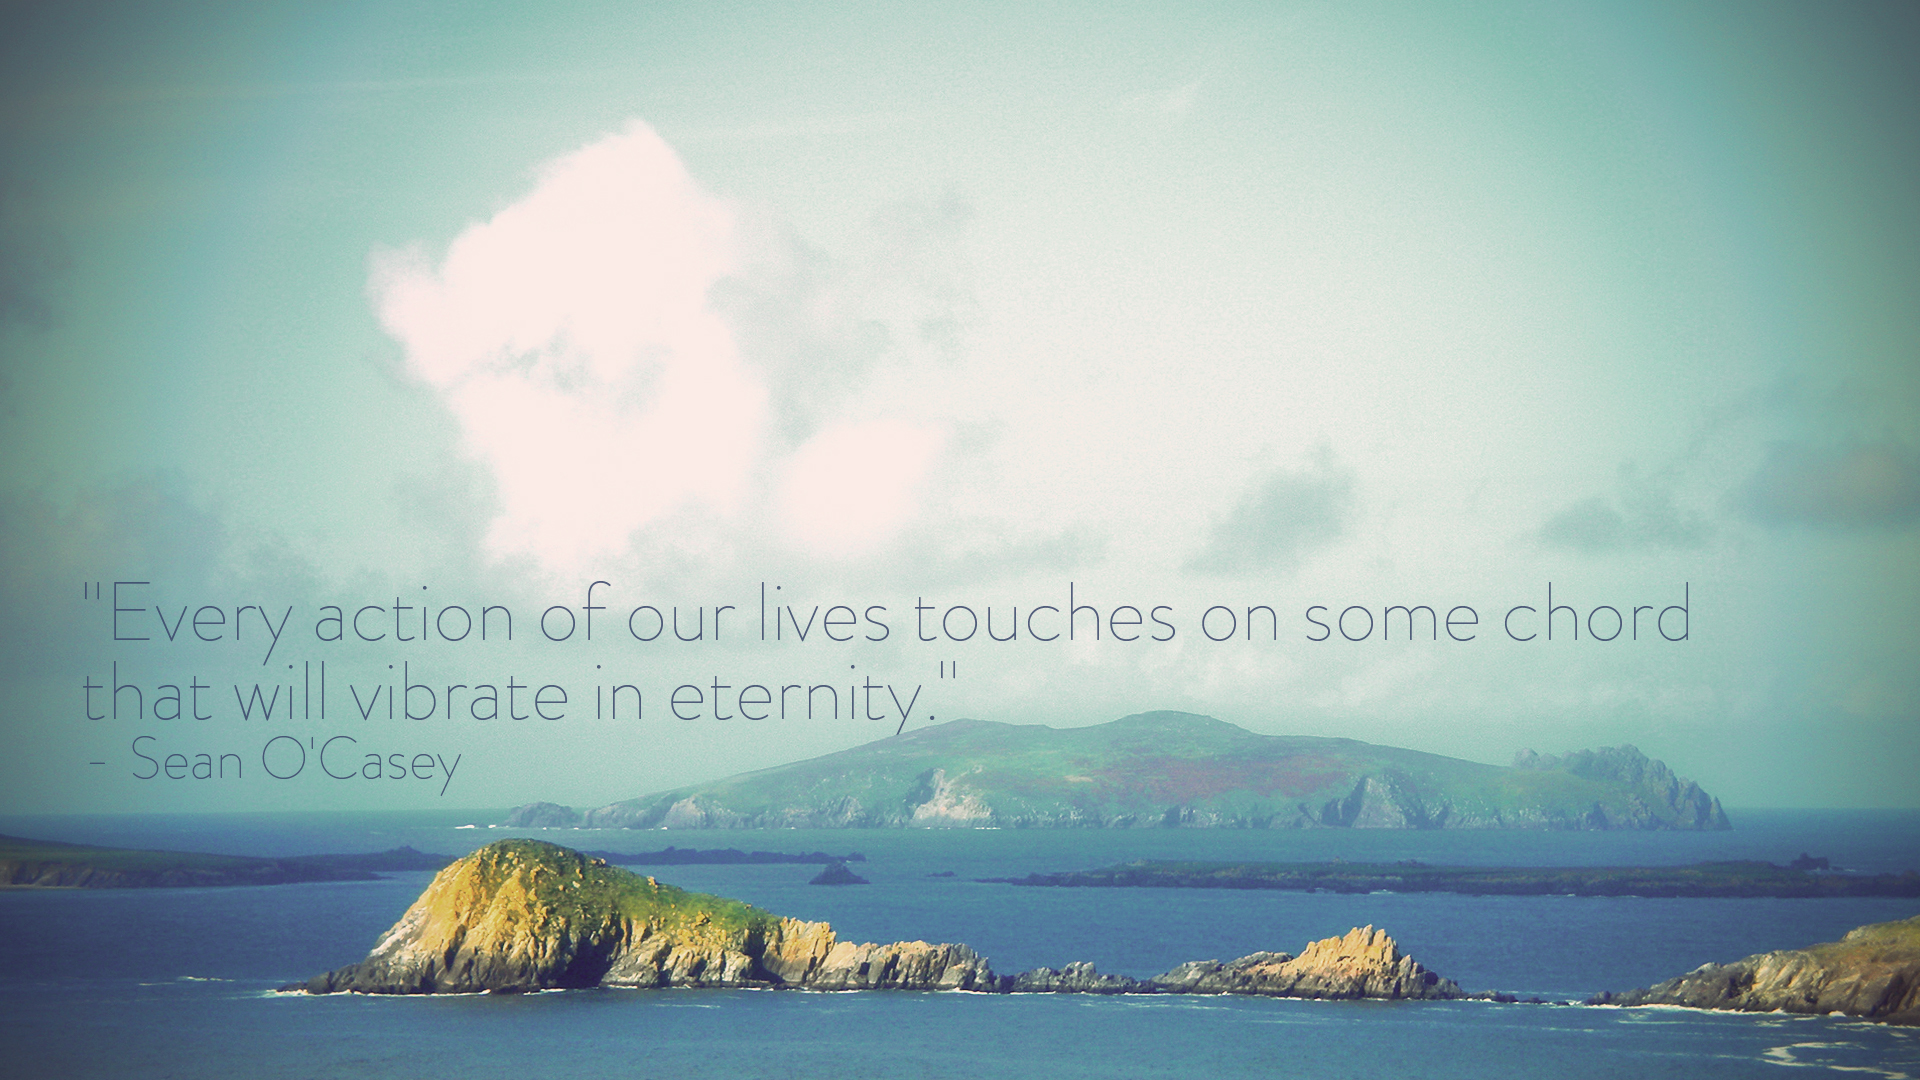 Every action of our lives touches on some chord that will vibrate in eternity. Sean O'Casey